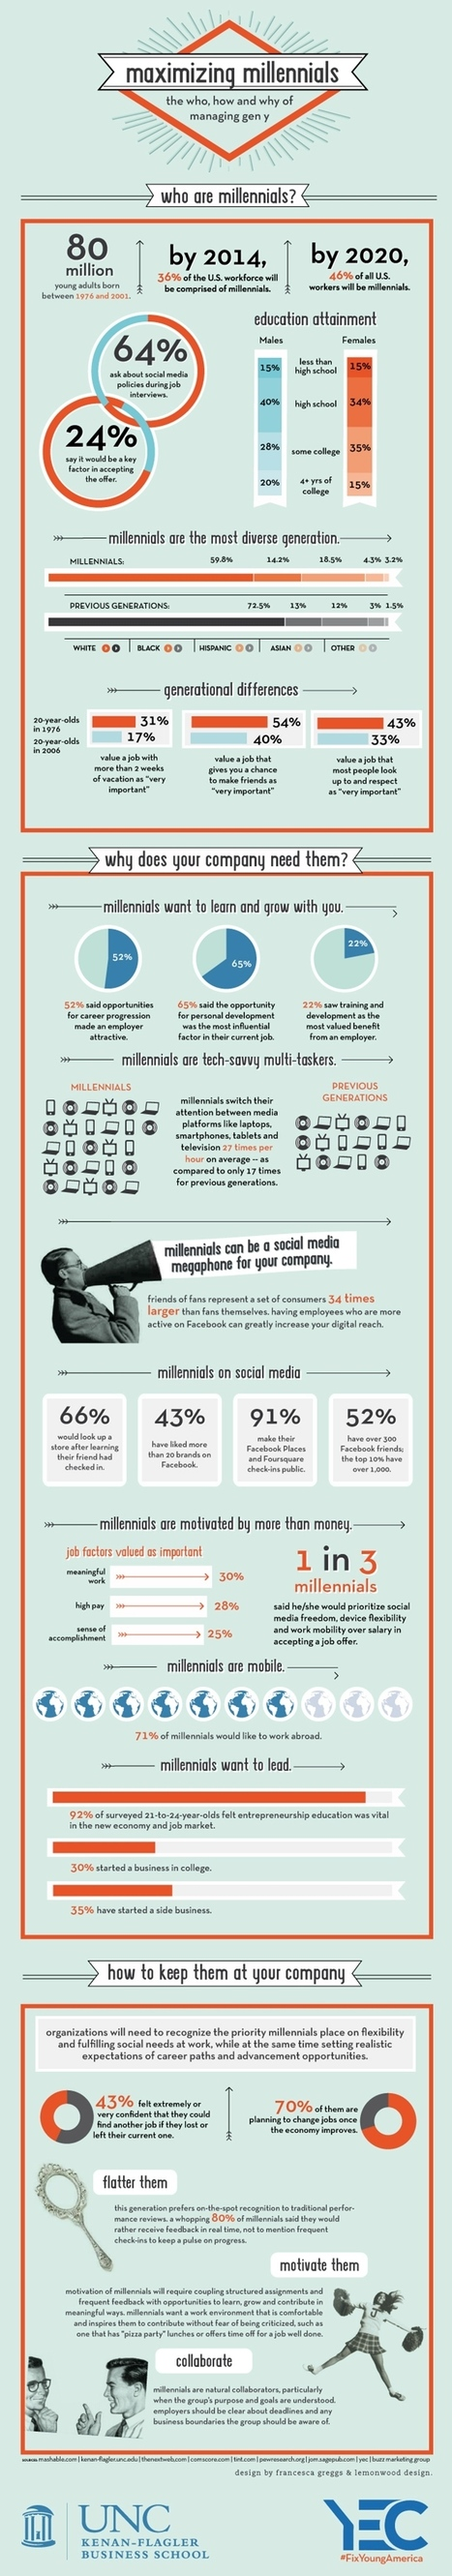 Mysteries and Myths of Millenials in Social Media - Business 2 Community | Quite Interesting Stats and Facts | Scoop.it